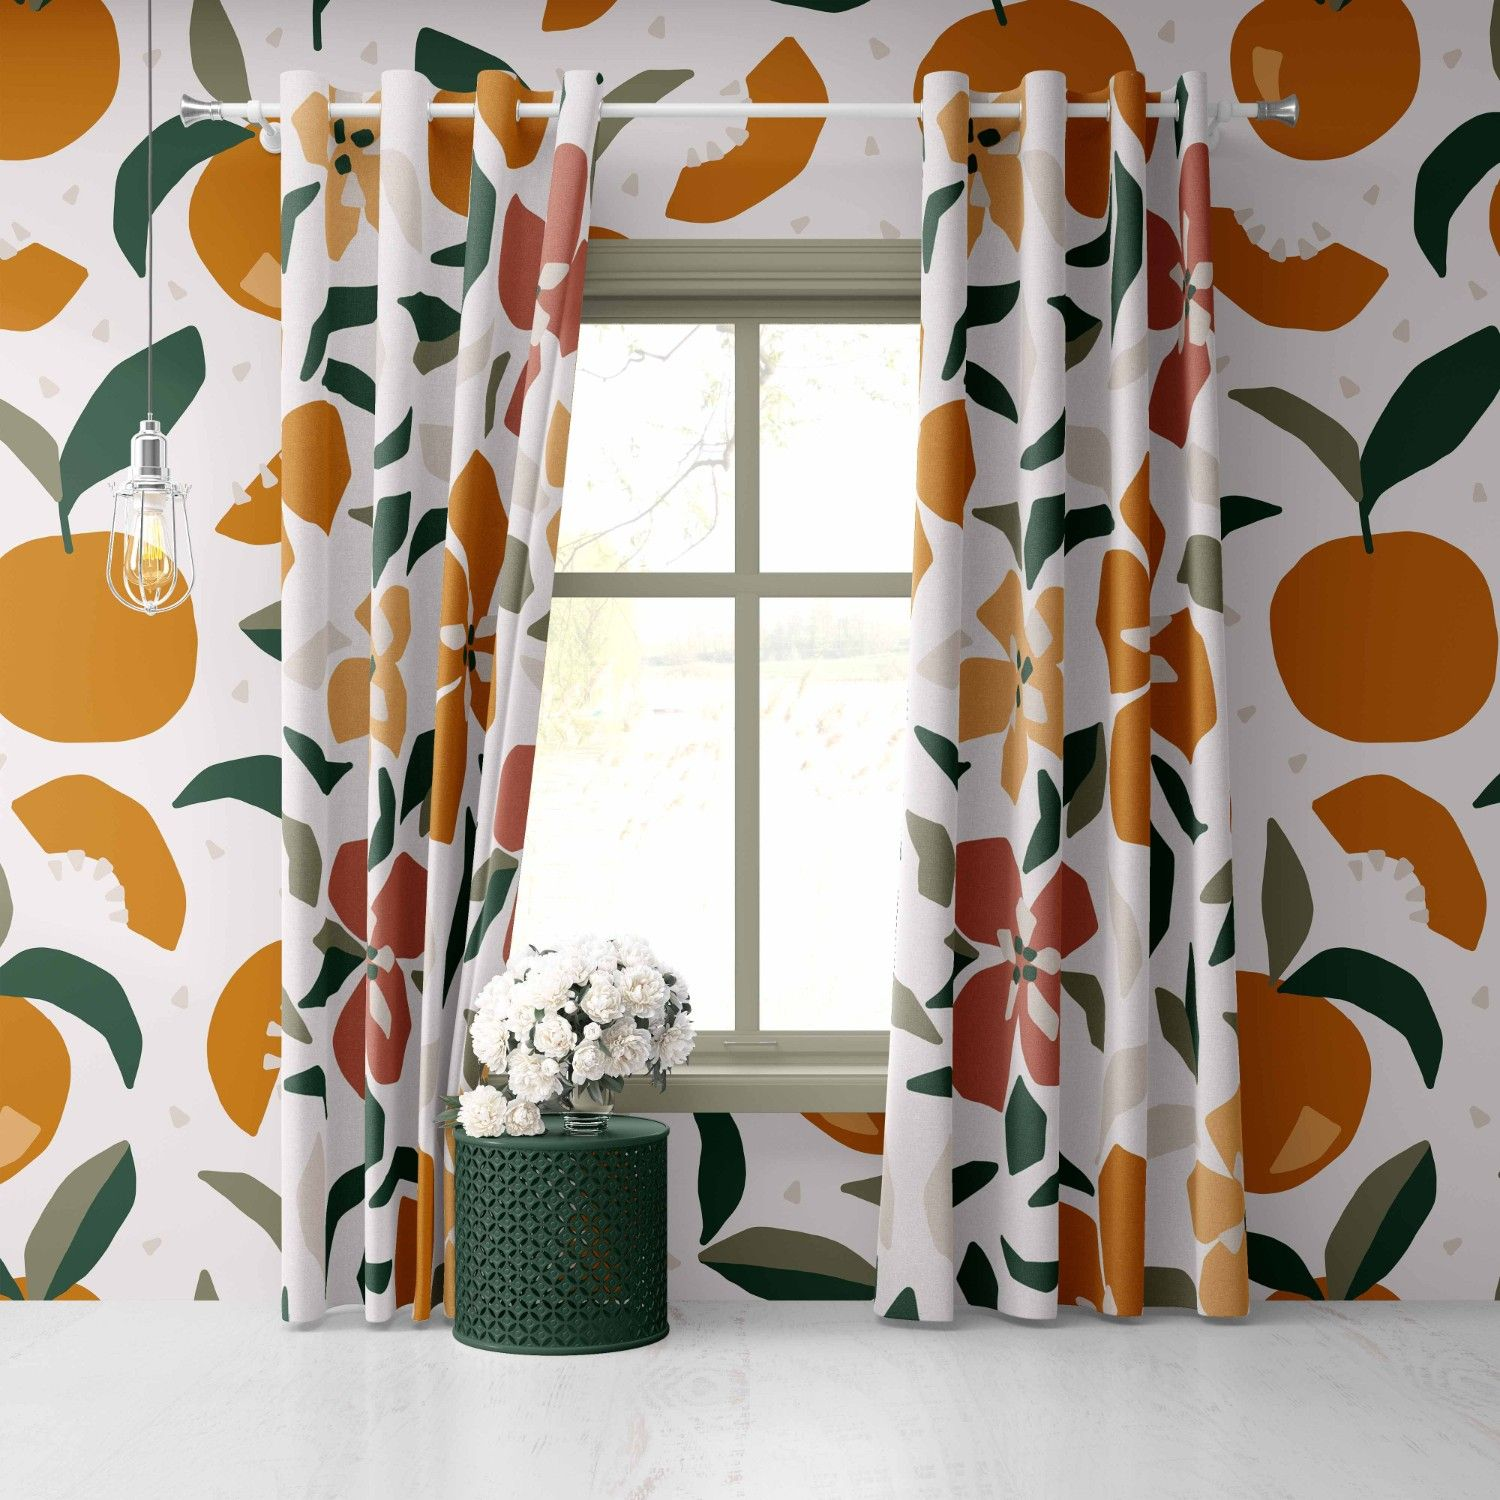 mediteranean notions concept wallpaper curtain